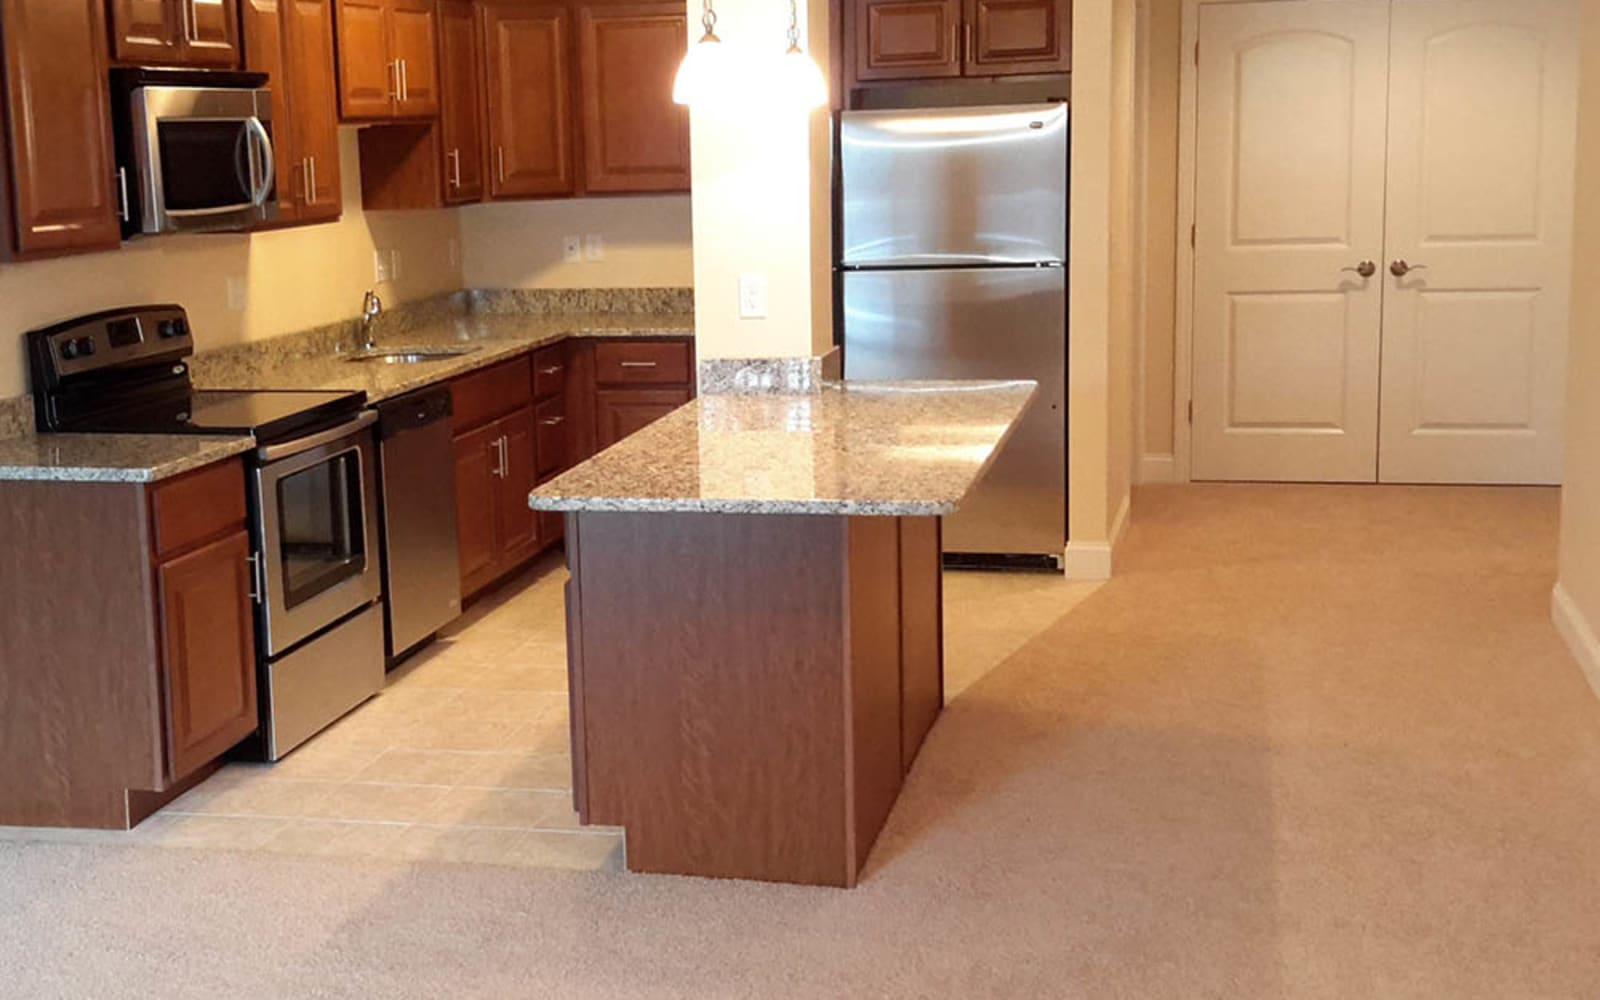 Convenient kitchen island at Grassfields Commons in Dracut, Massachusetts